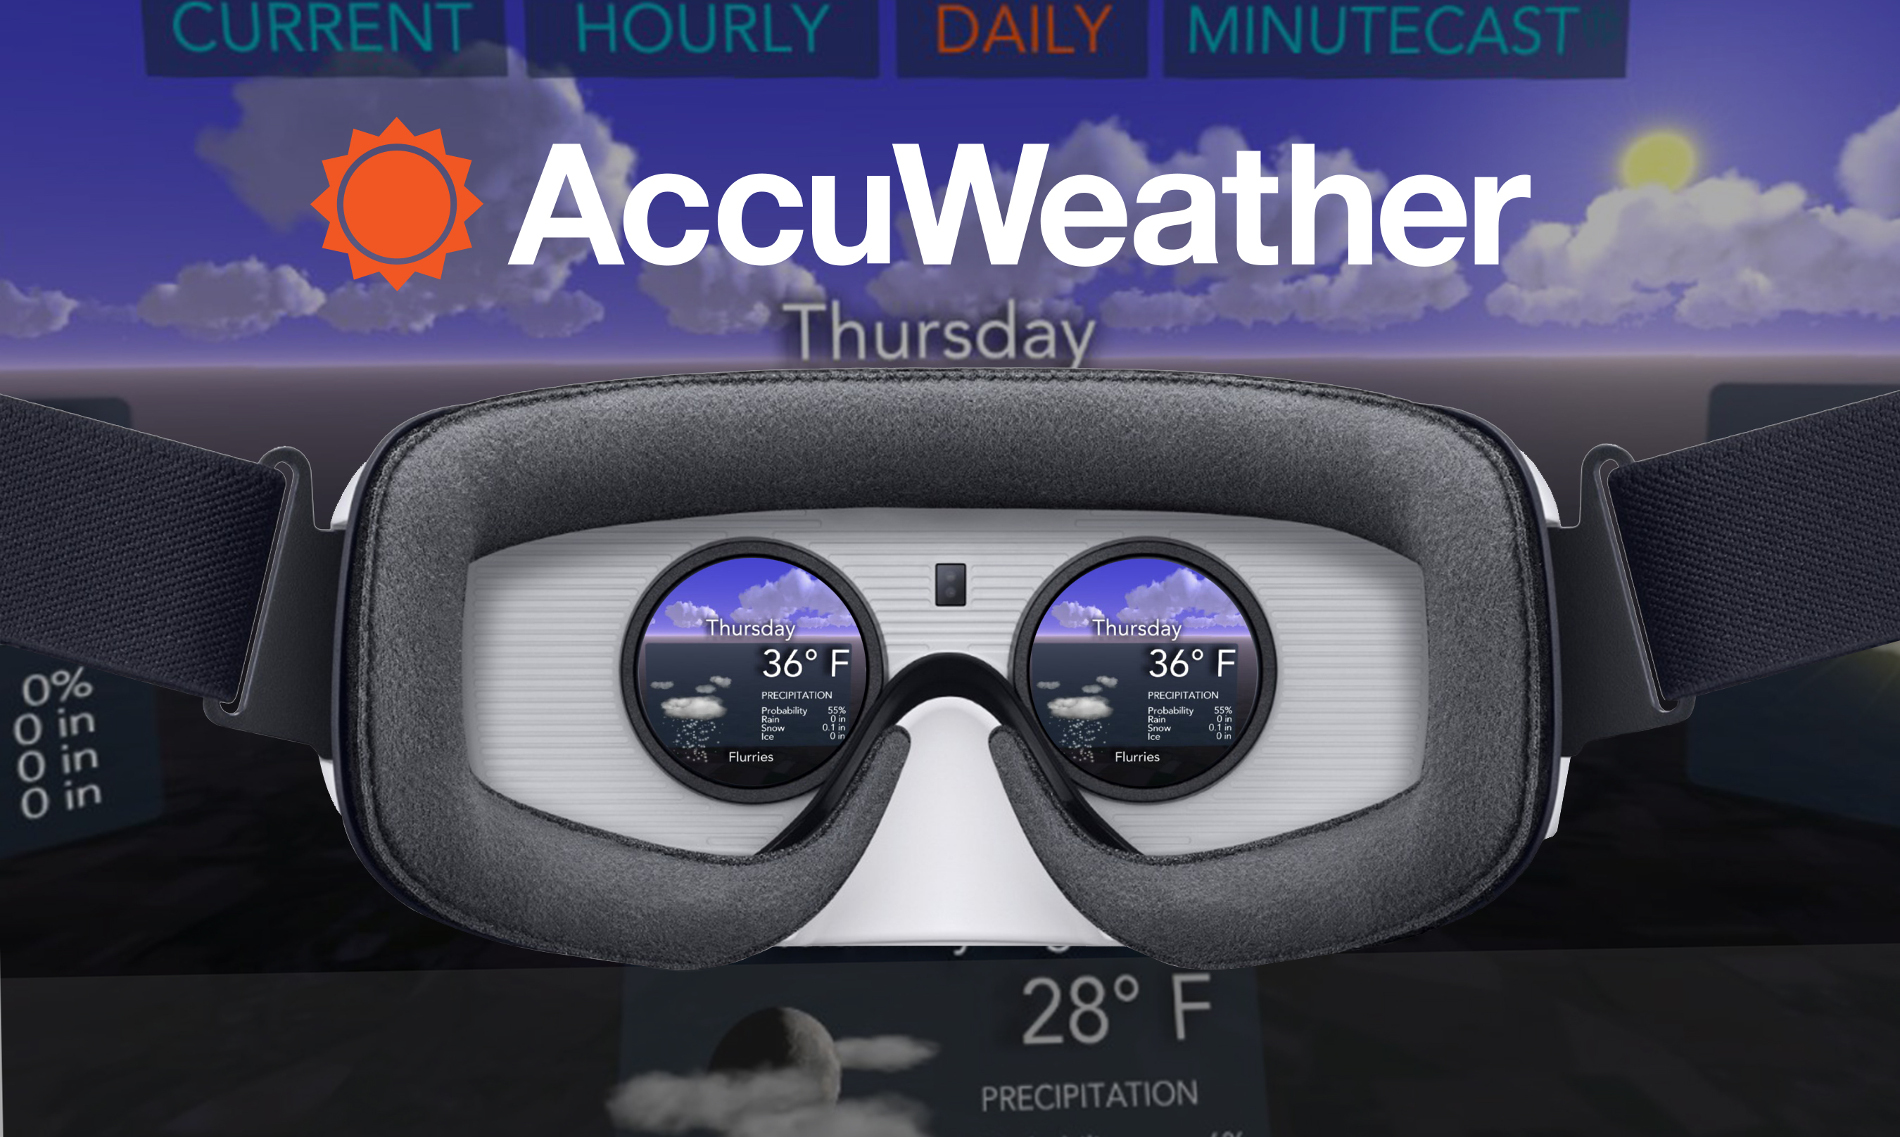 accuweather vr app